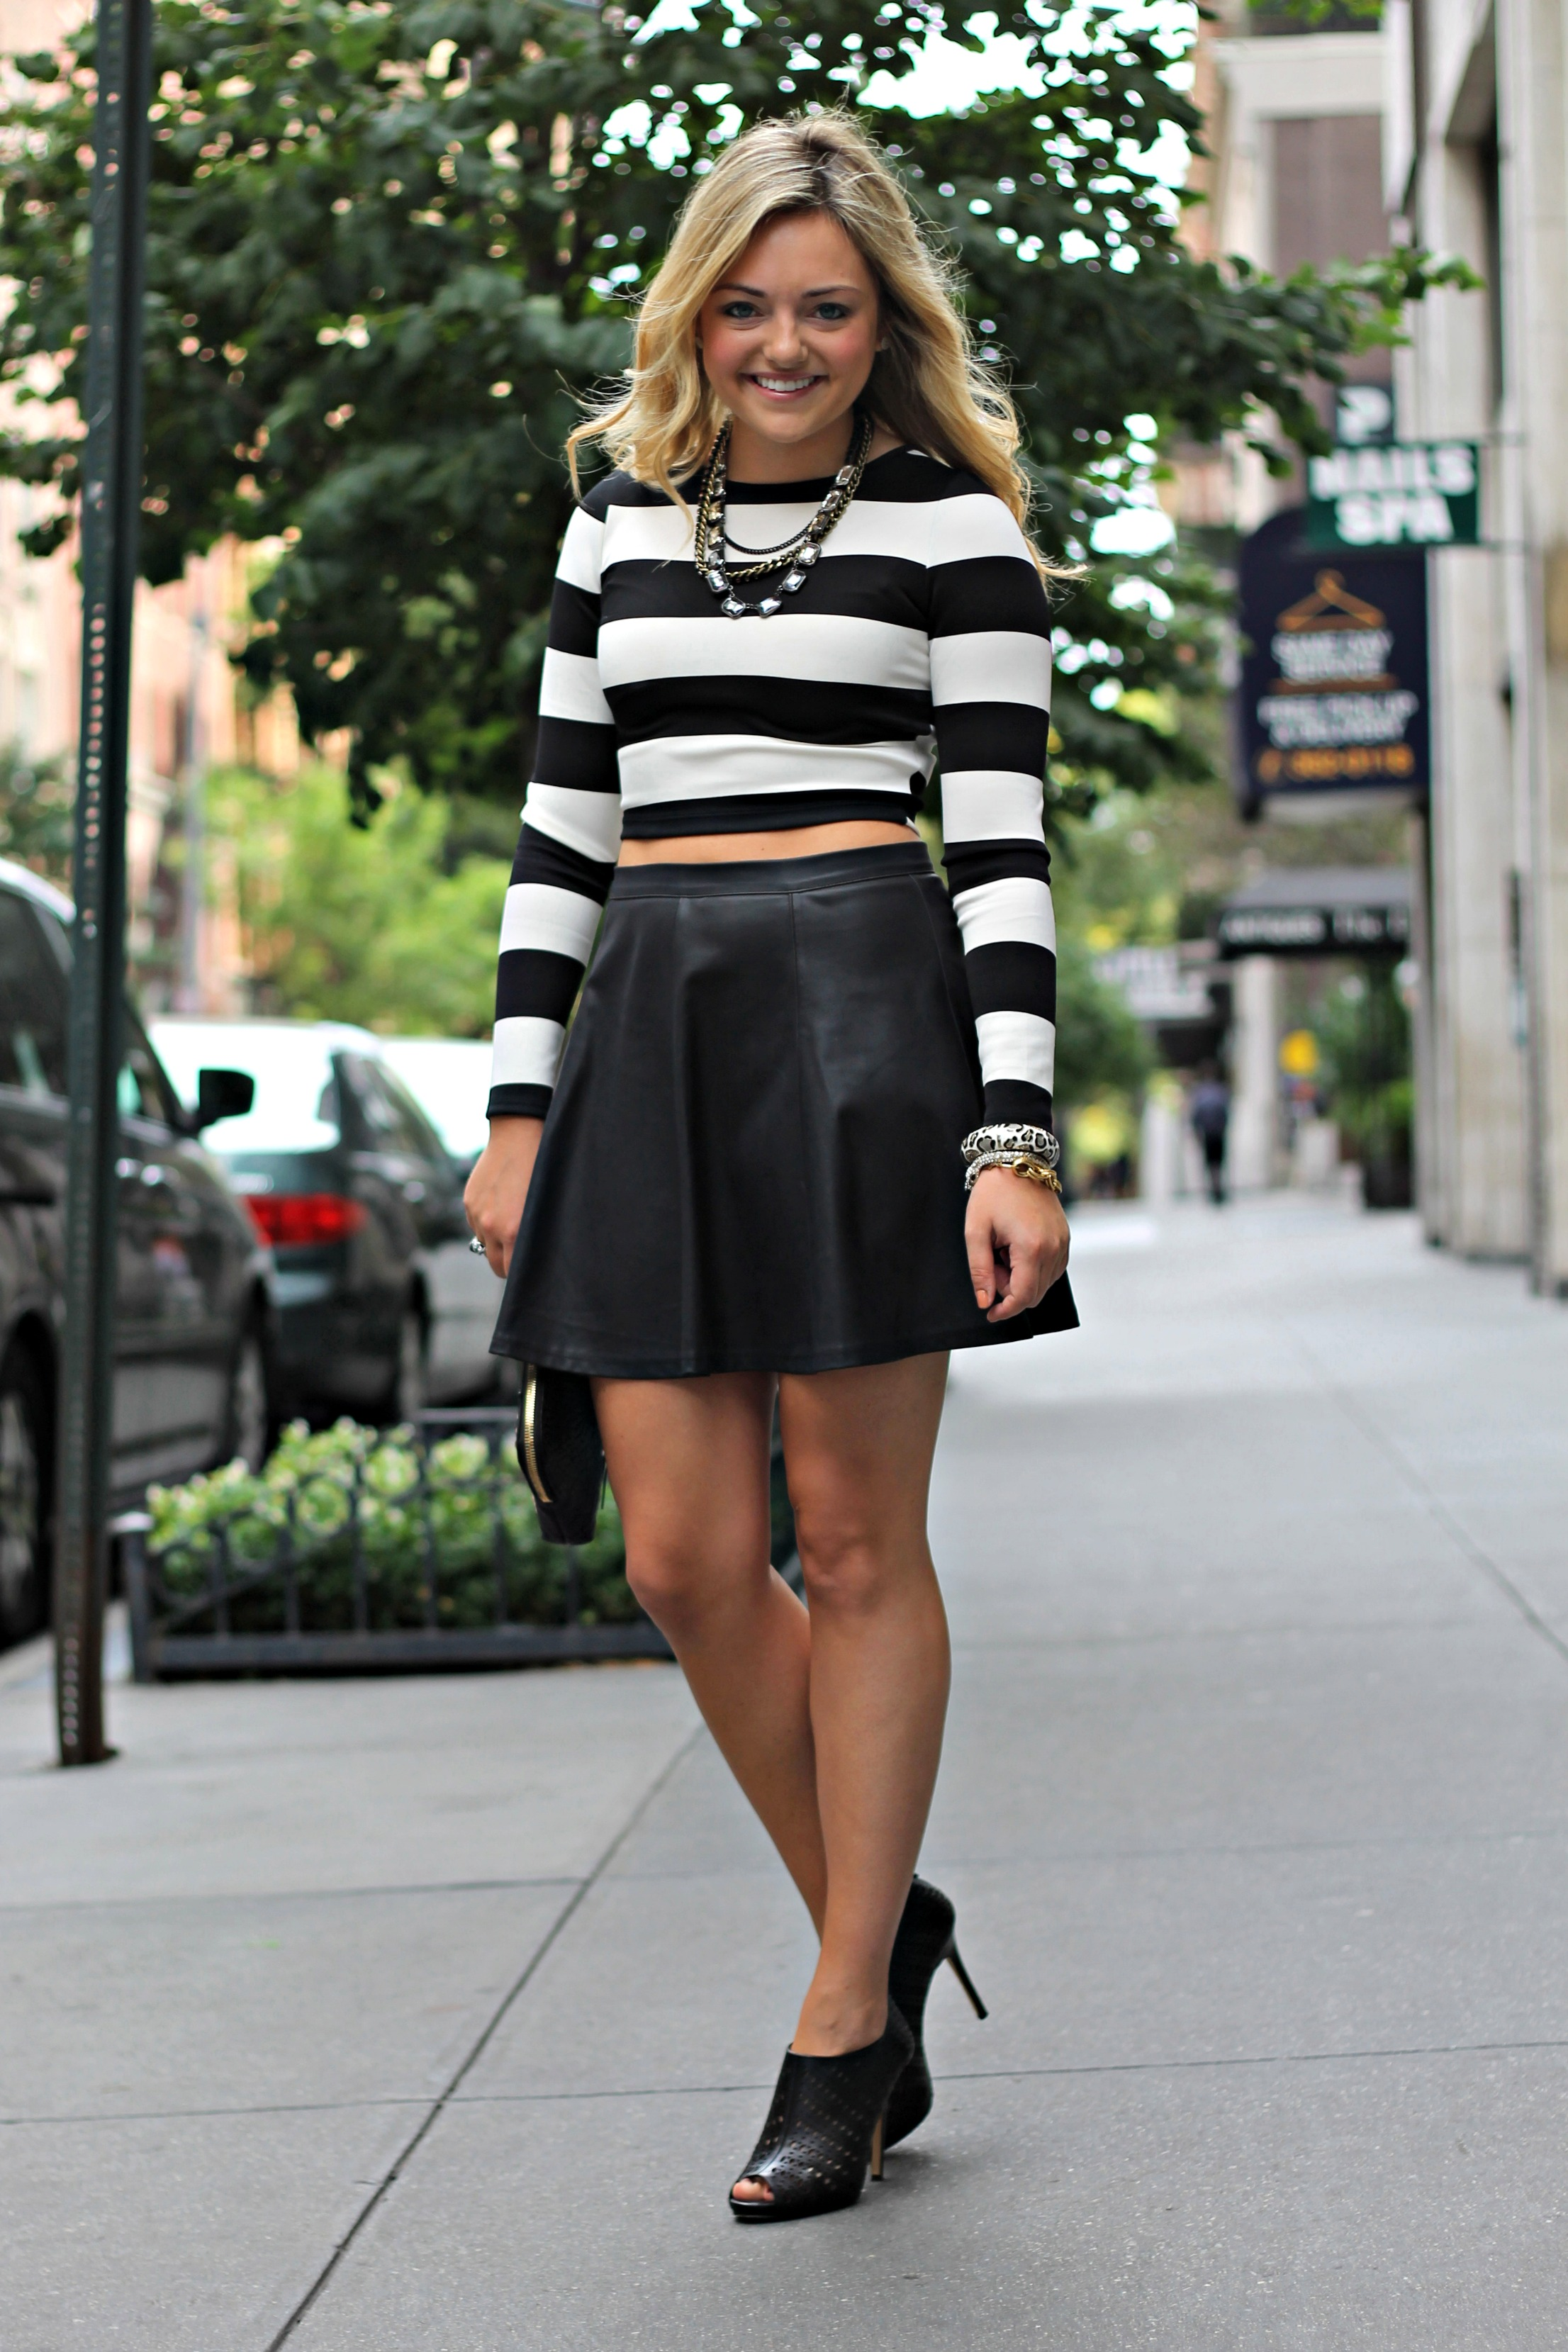 Black leather skirt crop top – Fashionable skirts 2017 photo blog